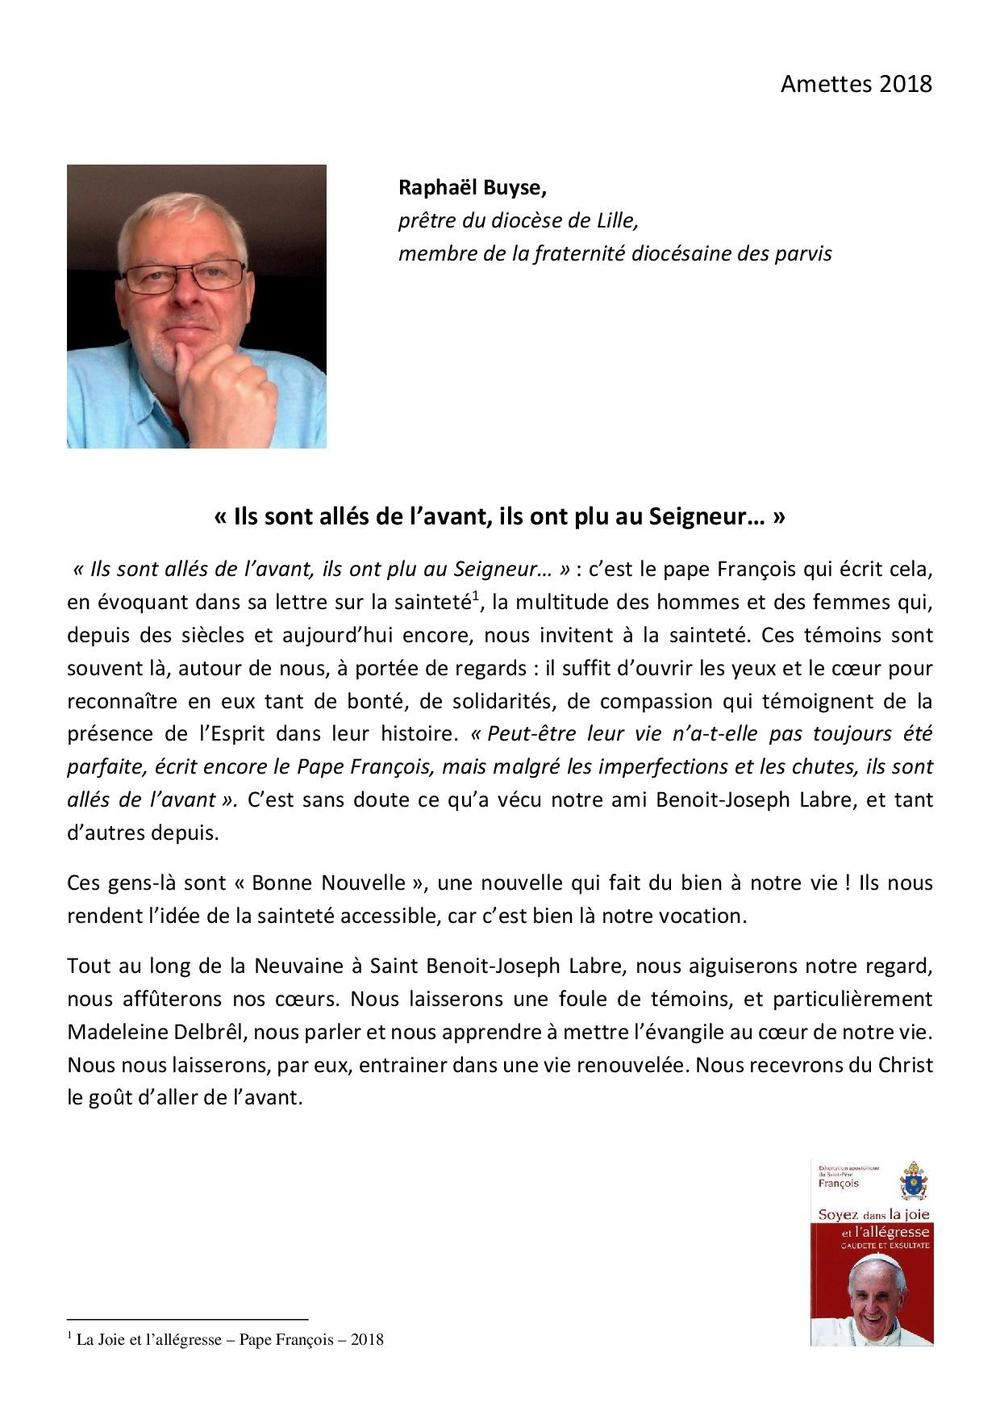 tract Amettes aout 2018 p2